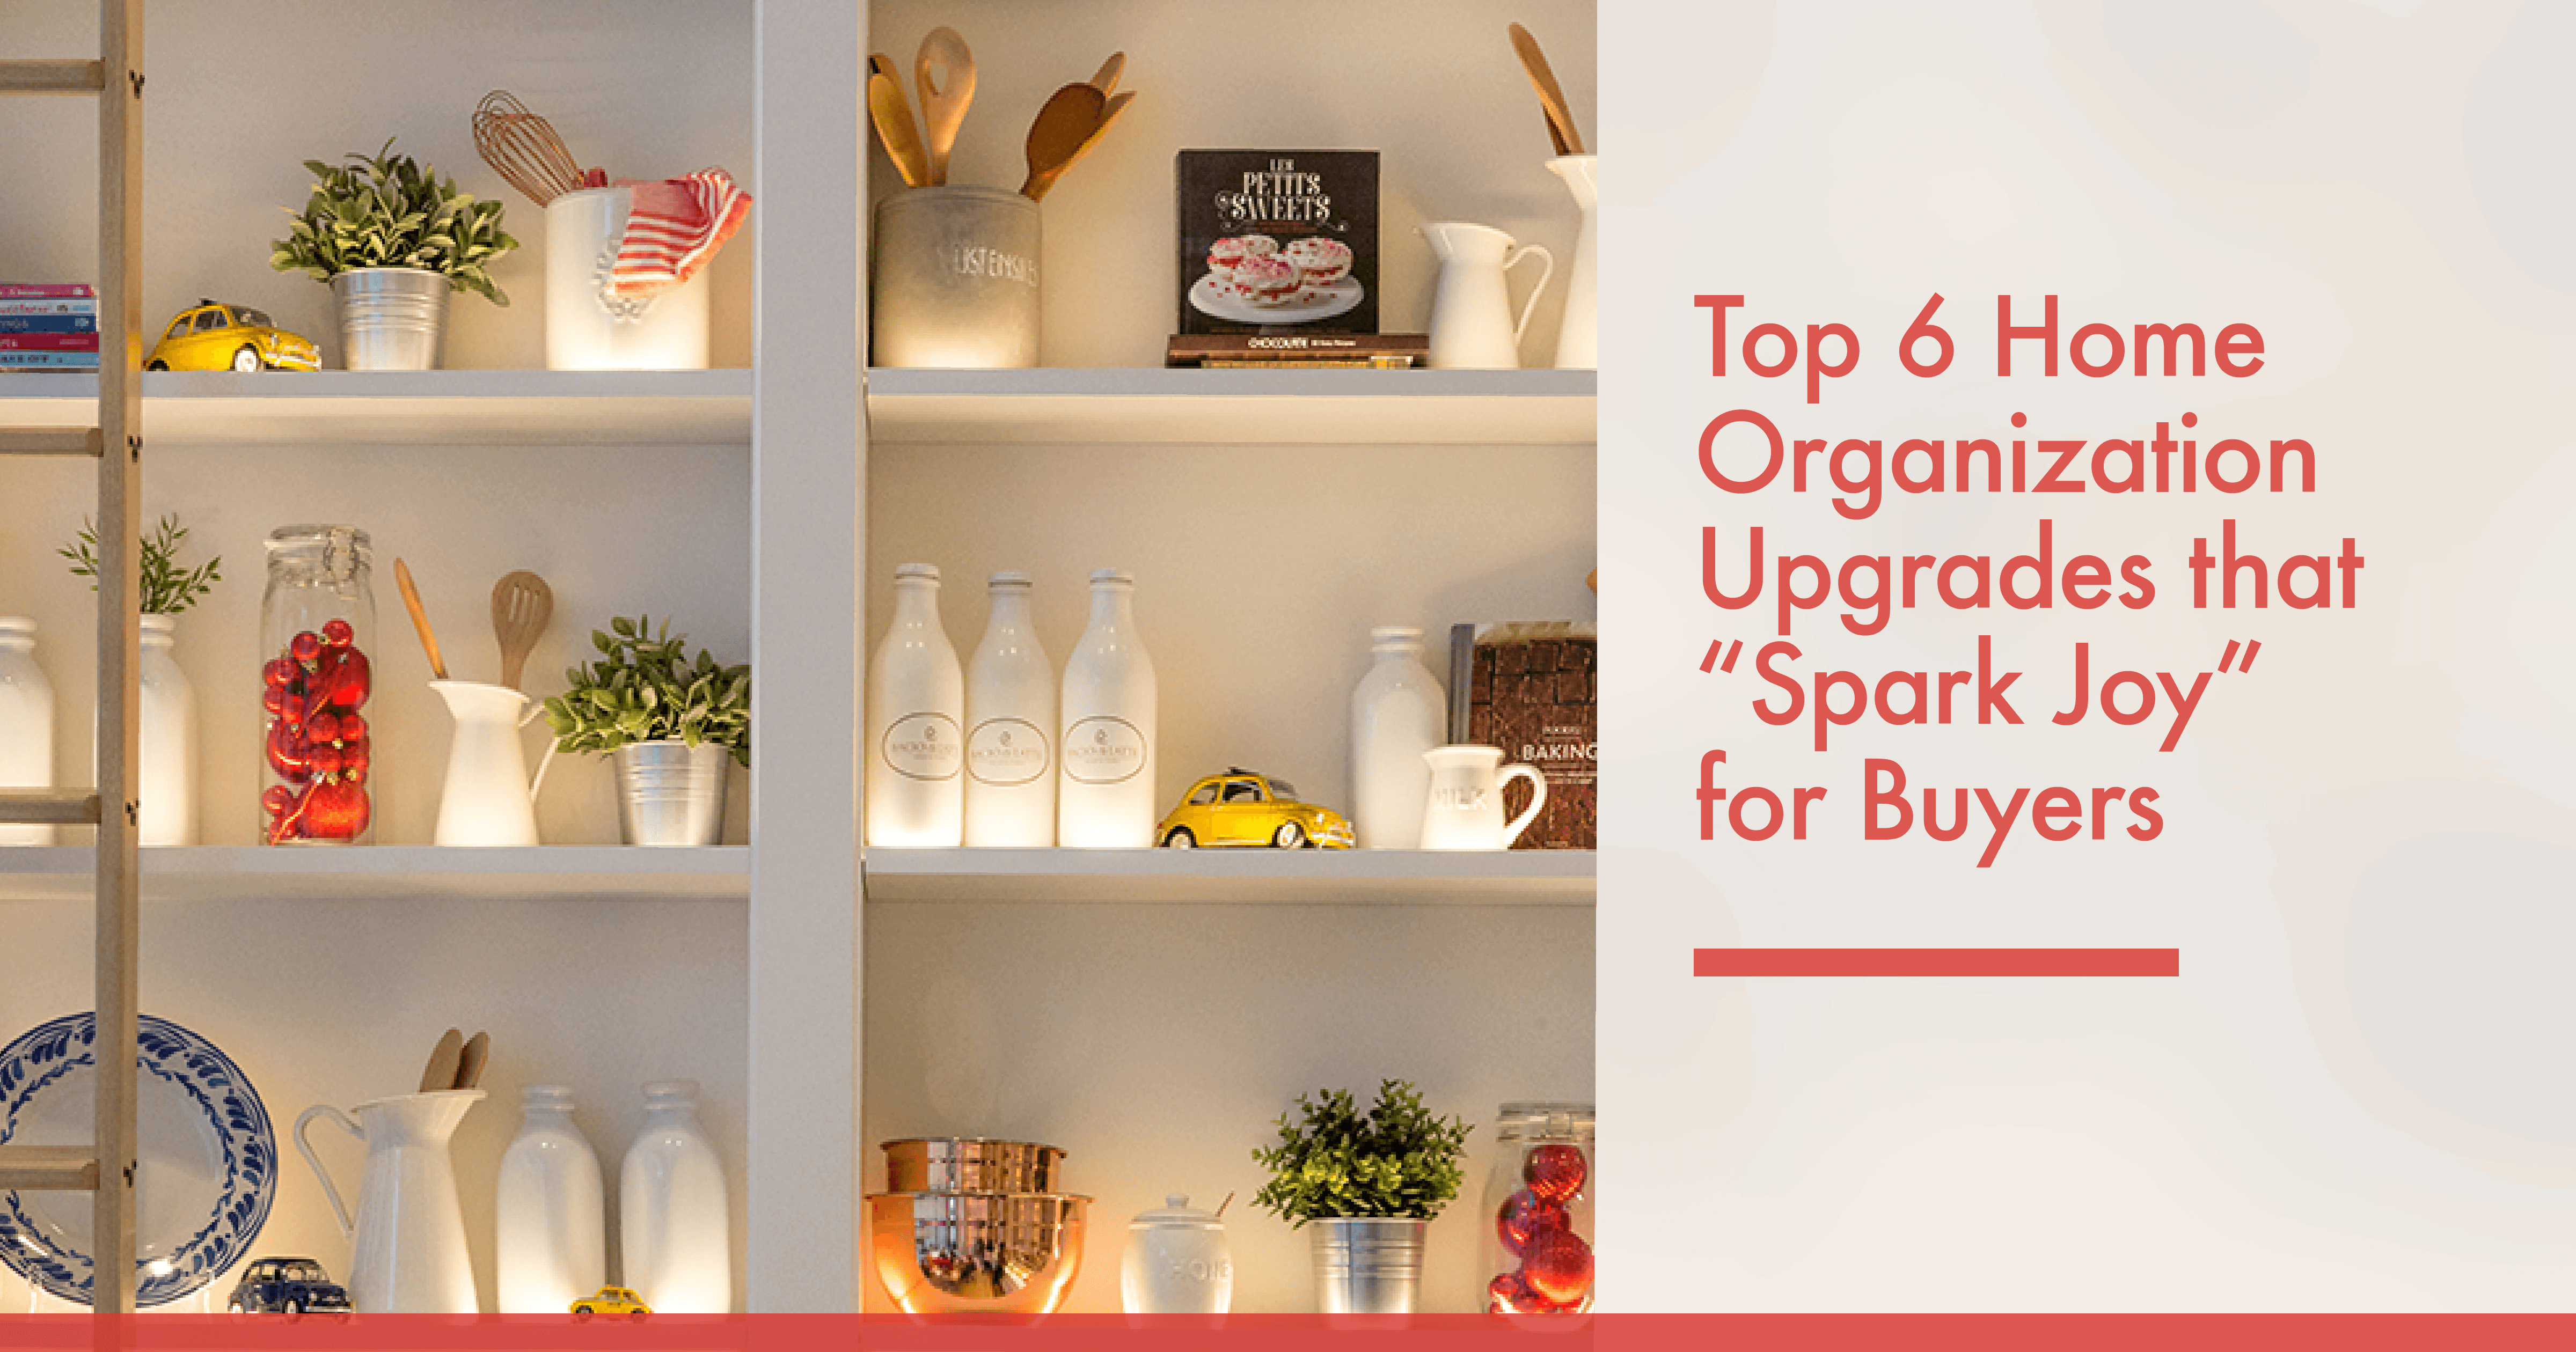 "Top 6 Organization Upgrades That ""Spark Joy"" For Buyers"